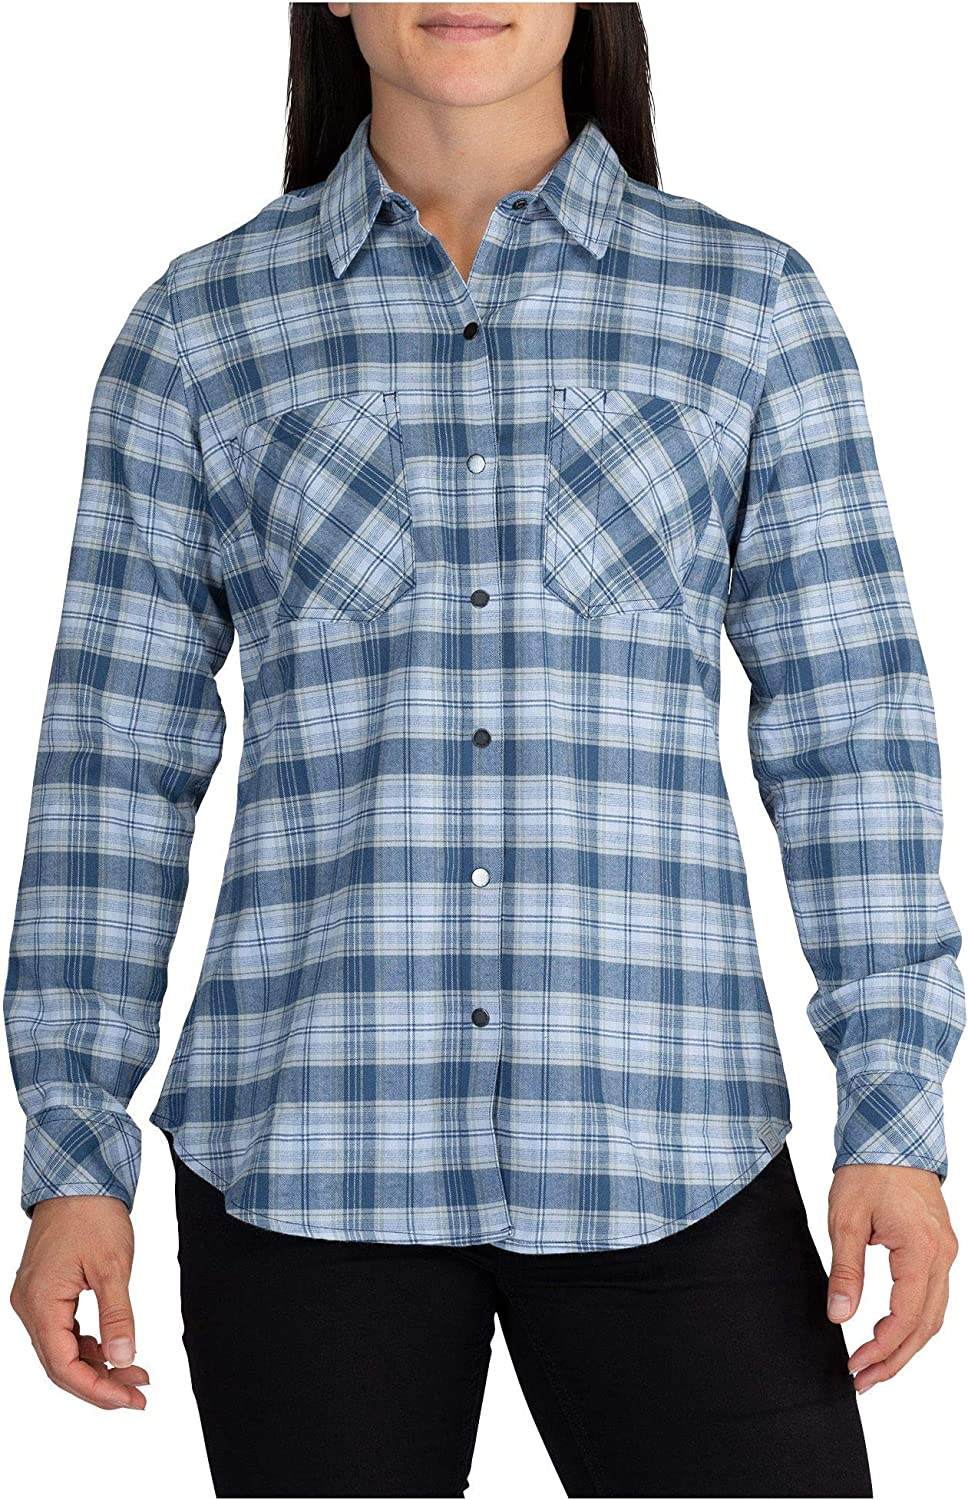 5.11 Tactical Women's Hanna Flannel Top Sleeve Shirt Max 83% New item OFF Long Style